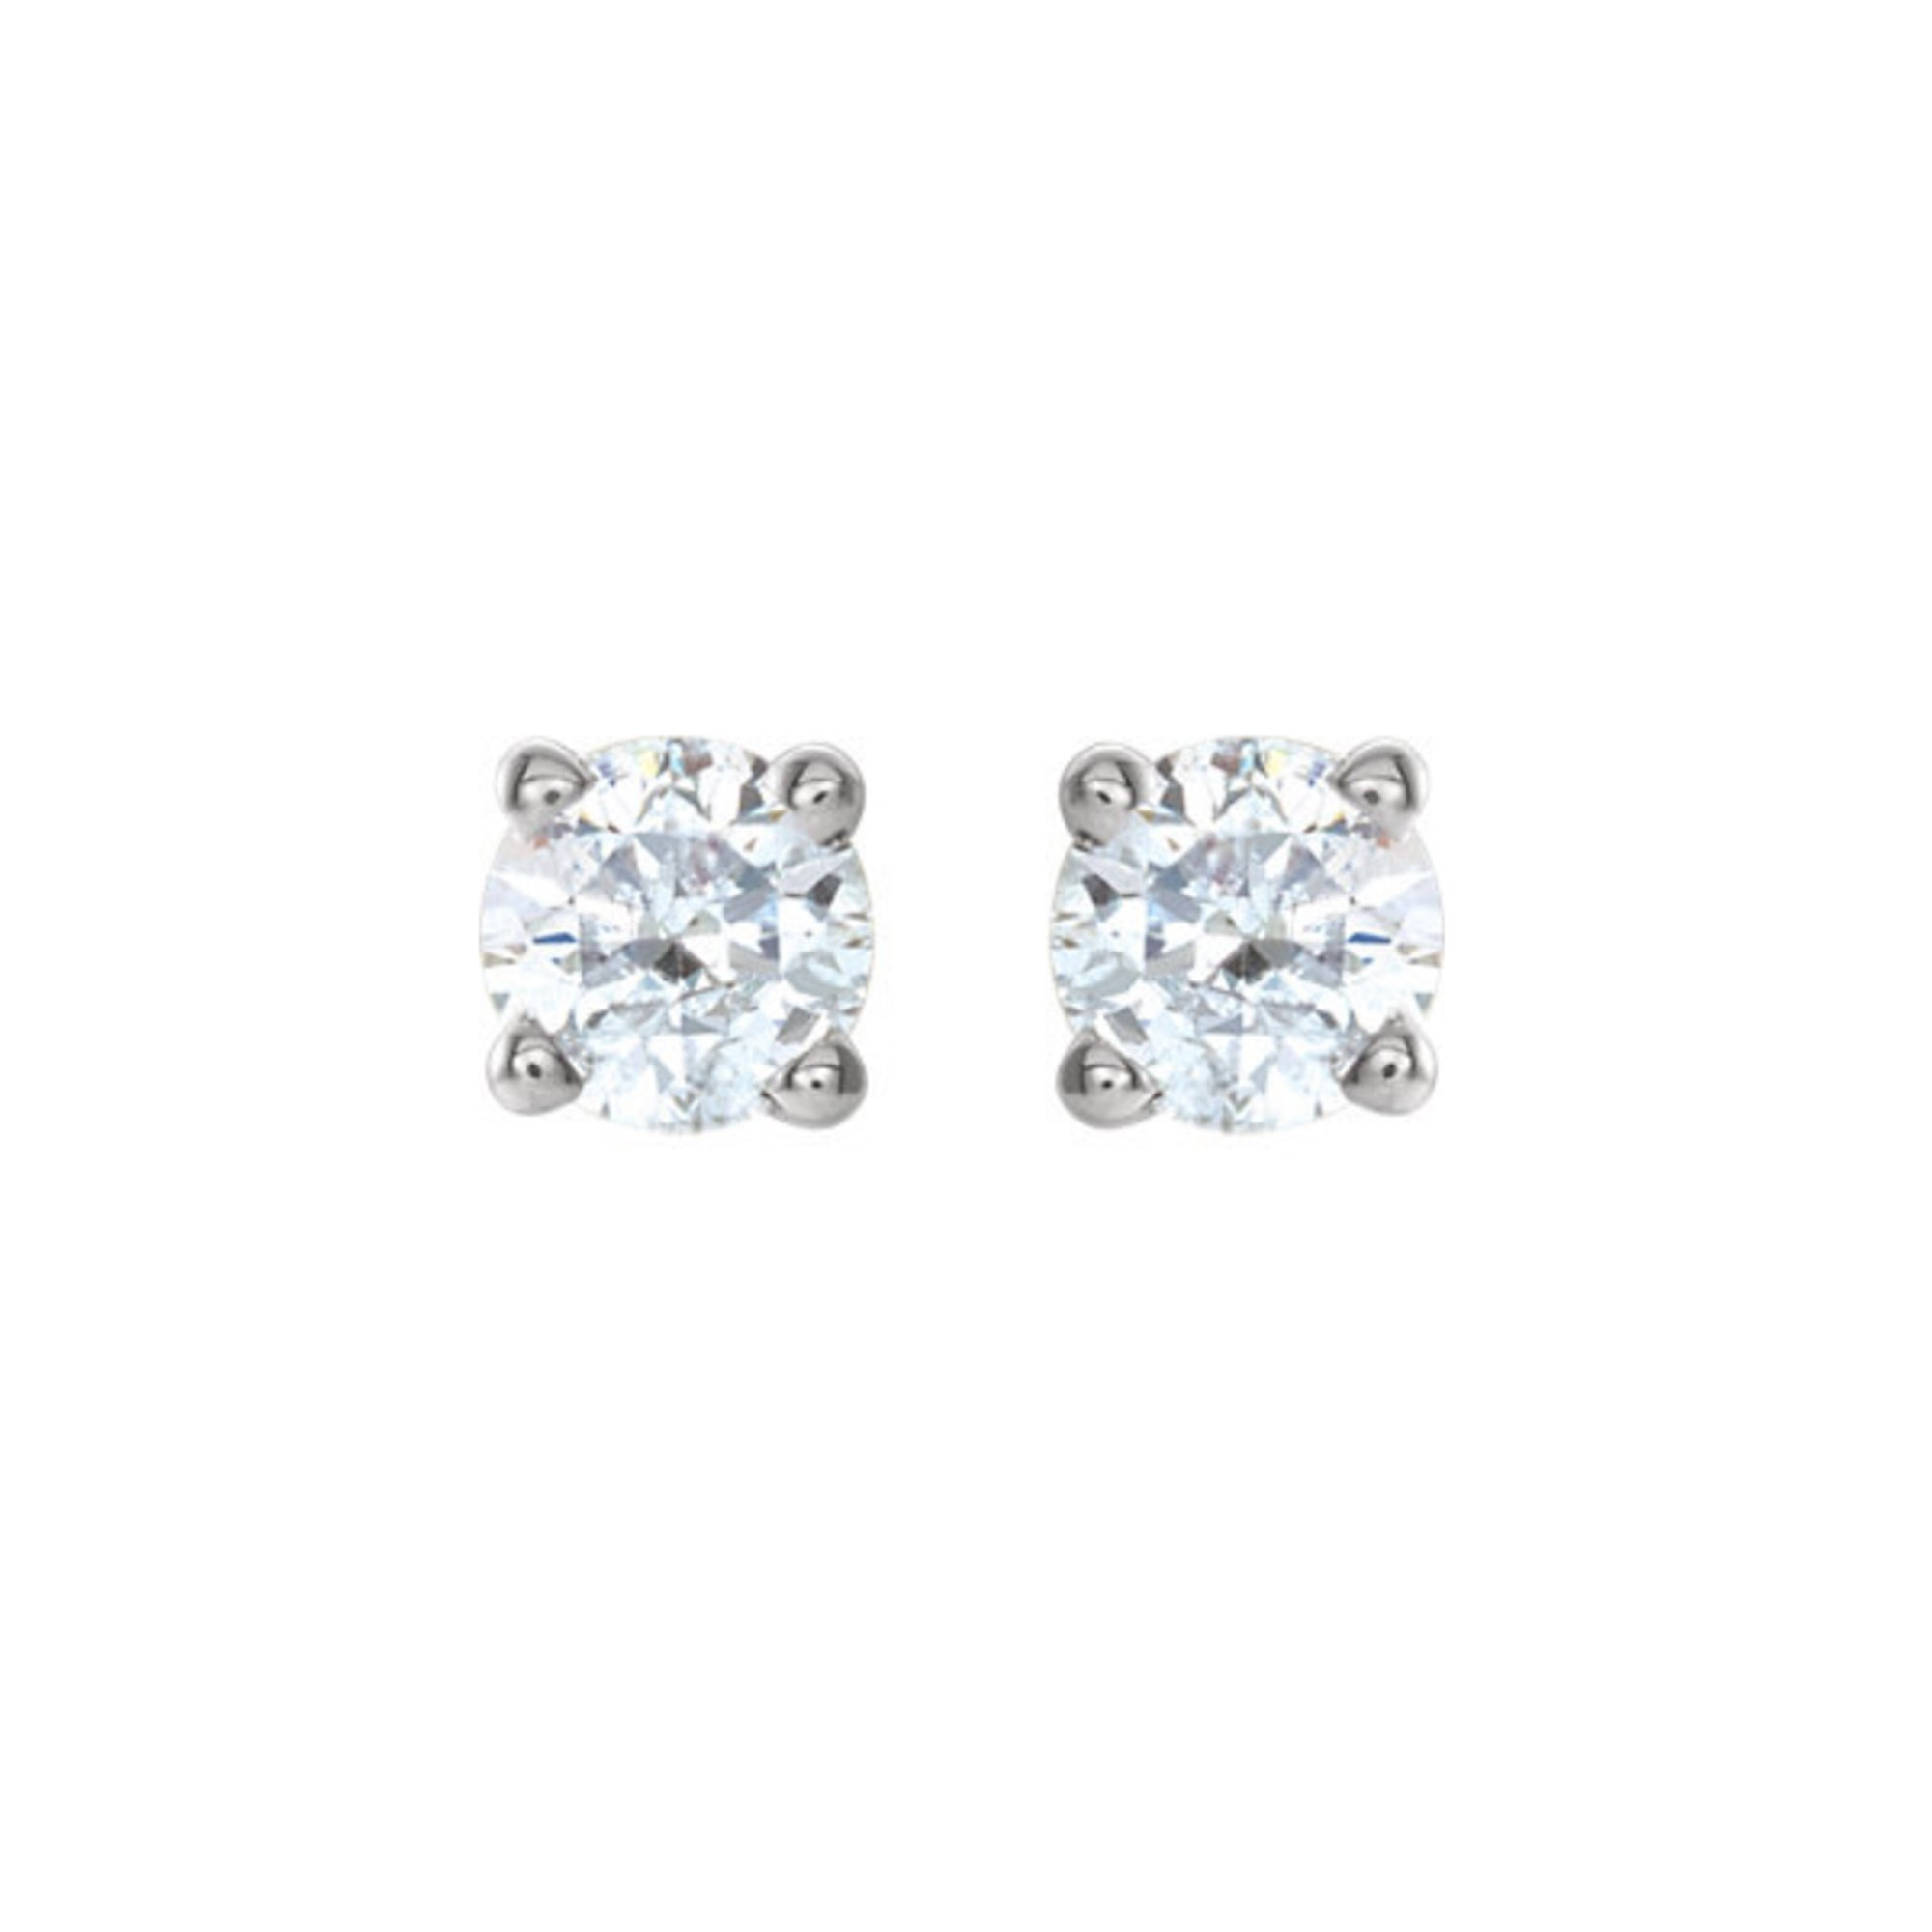 Diamond Stud Earrings, 0.25 Carat Total Weight in 14k White, Yellow or Rose Gold - Talisman Collection Fine Jewelers